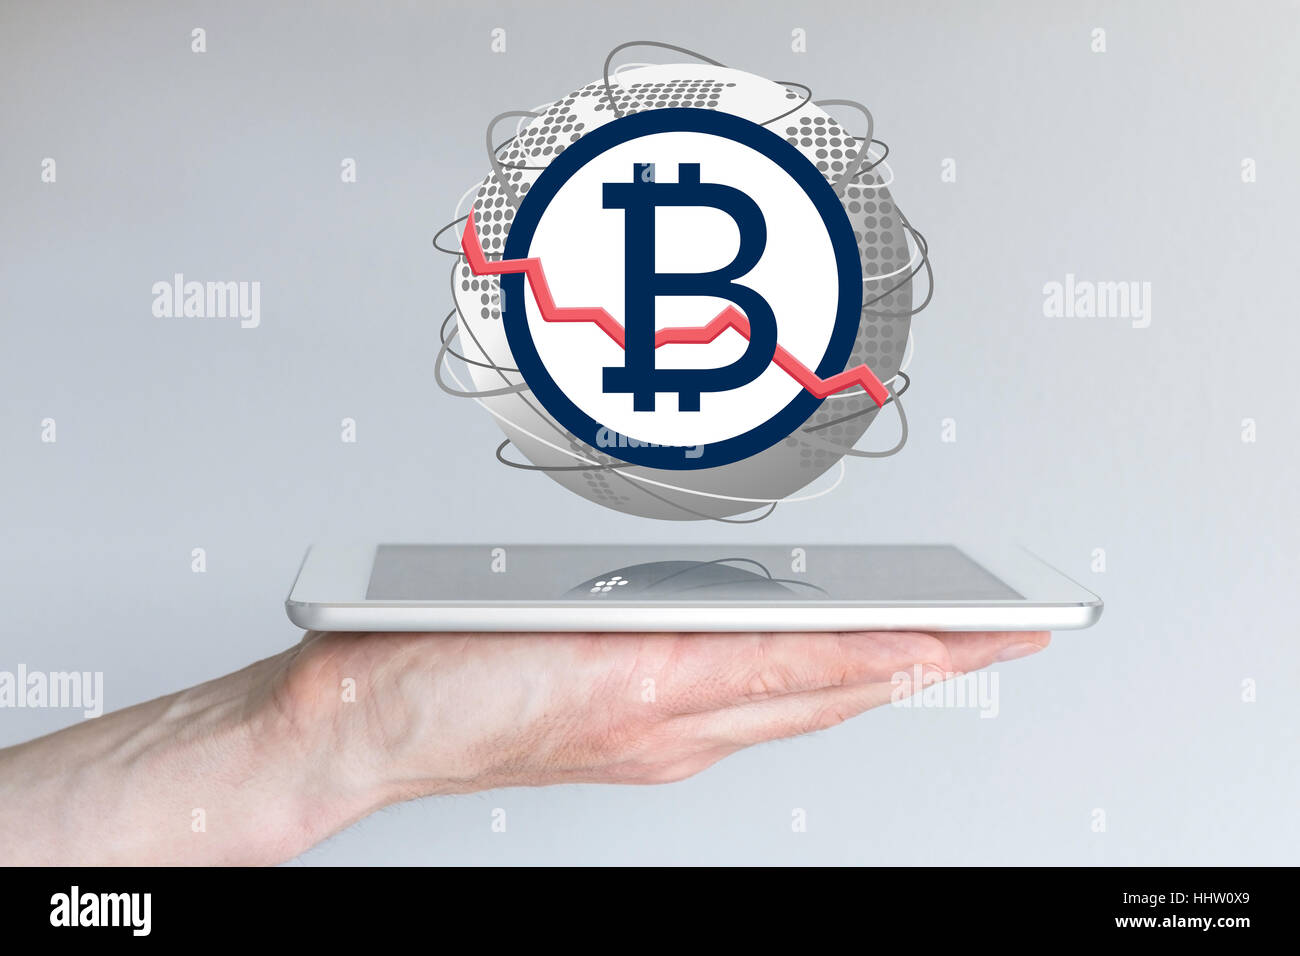 Decline of global bitcoin currency exchange rate concept with hand holding tablet - Stock Image